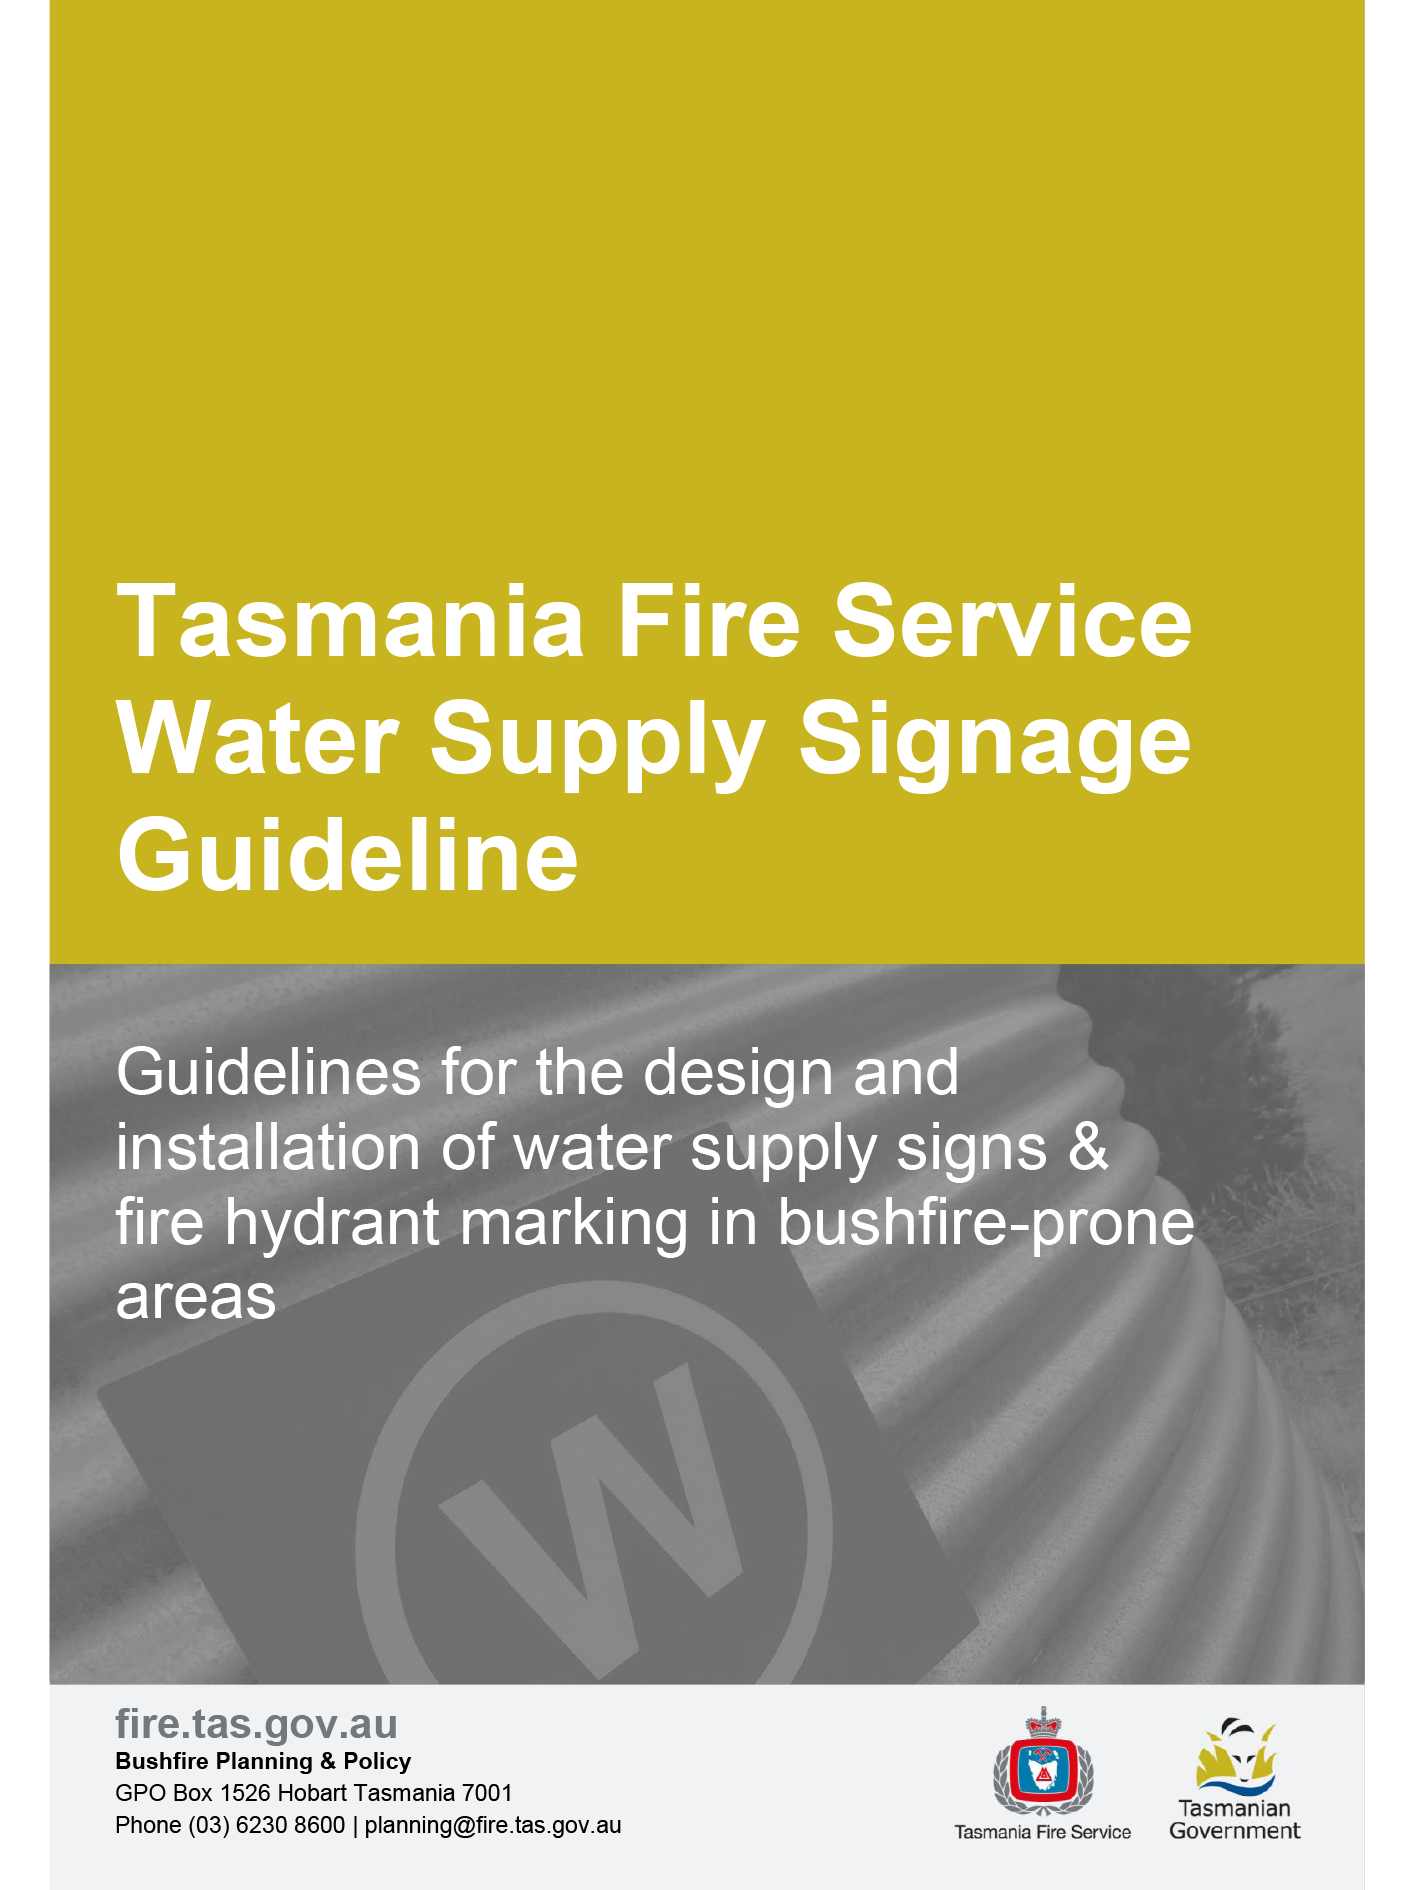 TFS Water Signage guideline